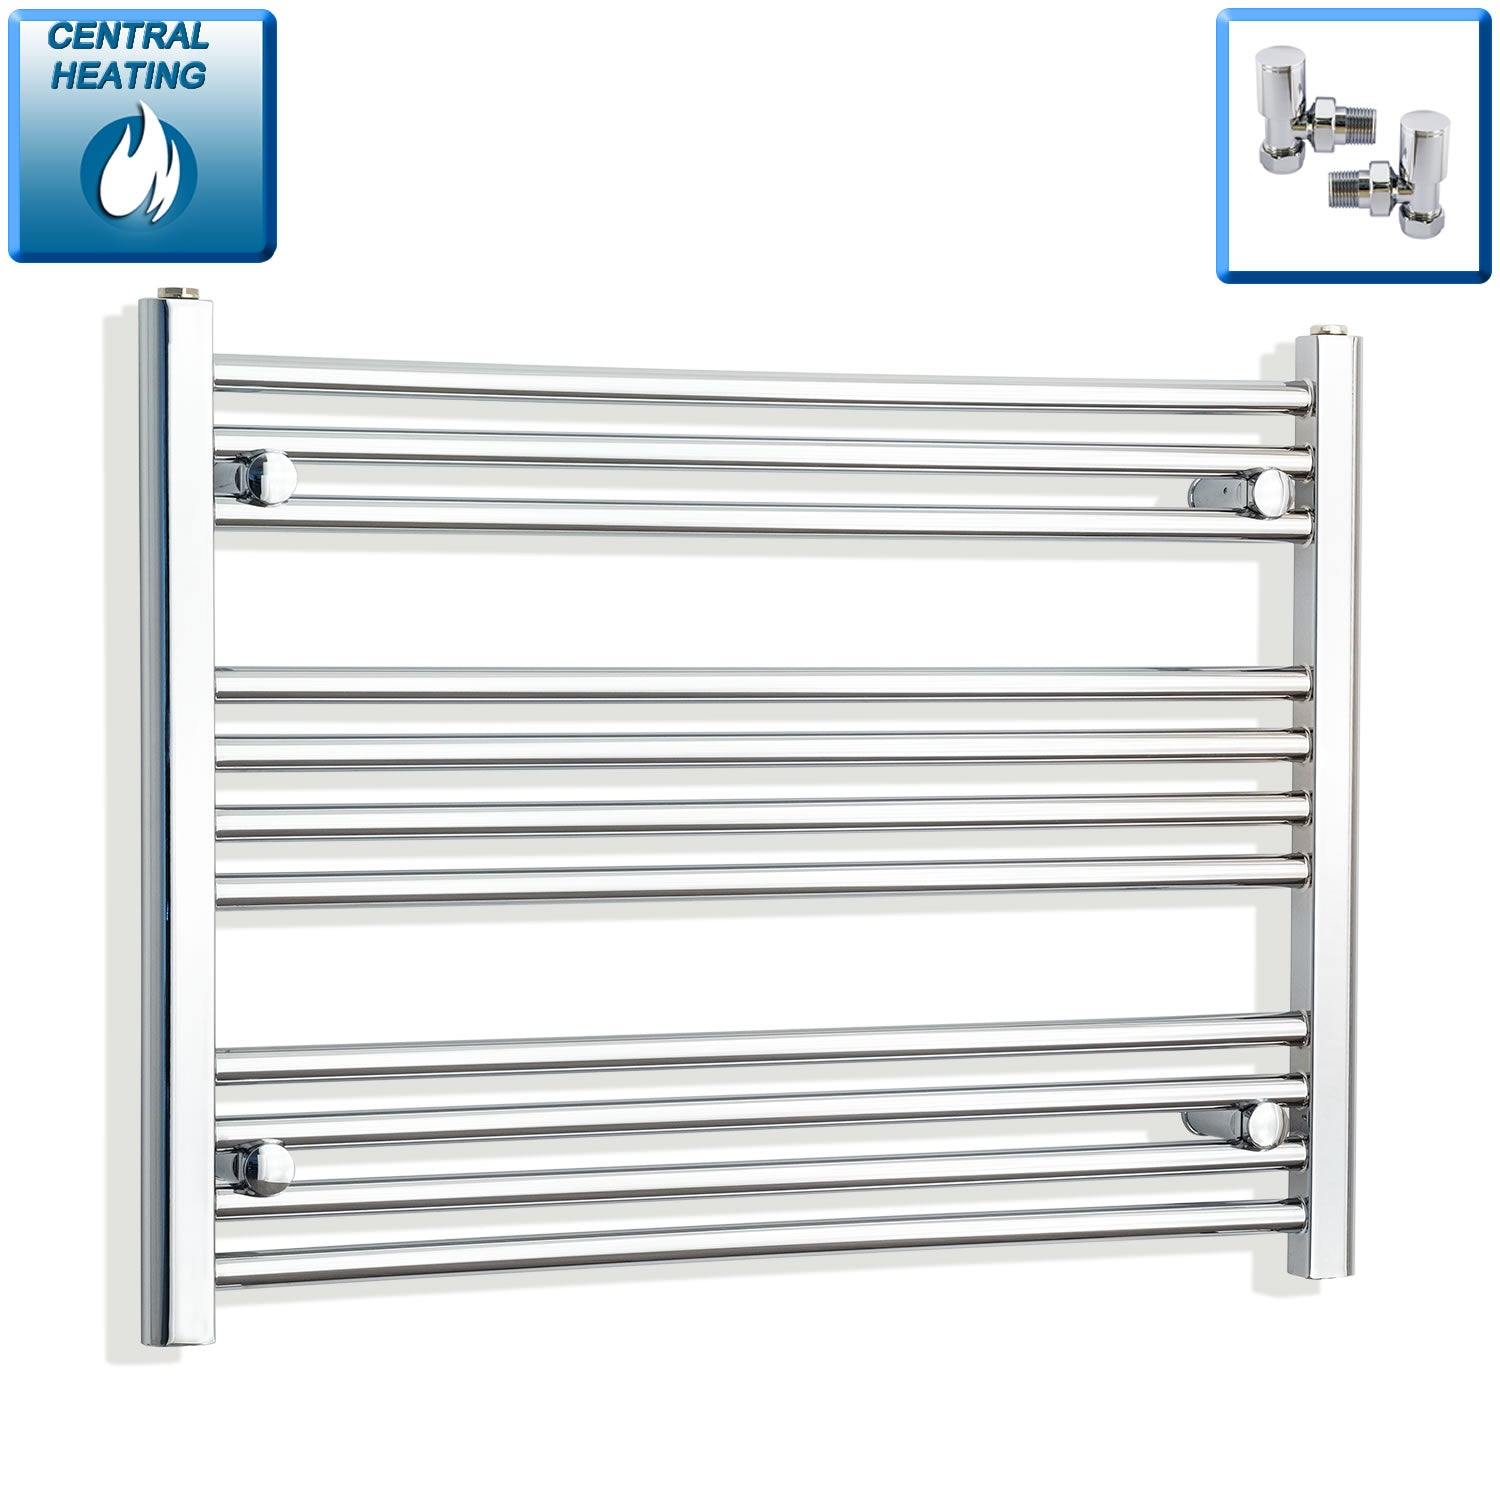 750mm Wide 600mm High Curved Chrome Heated Towel Rail Radiator HTR,With Angled Valve